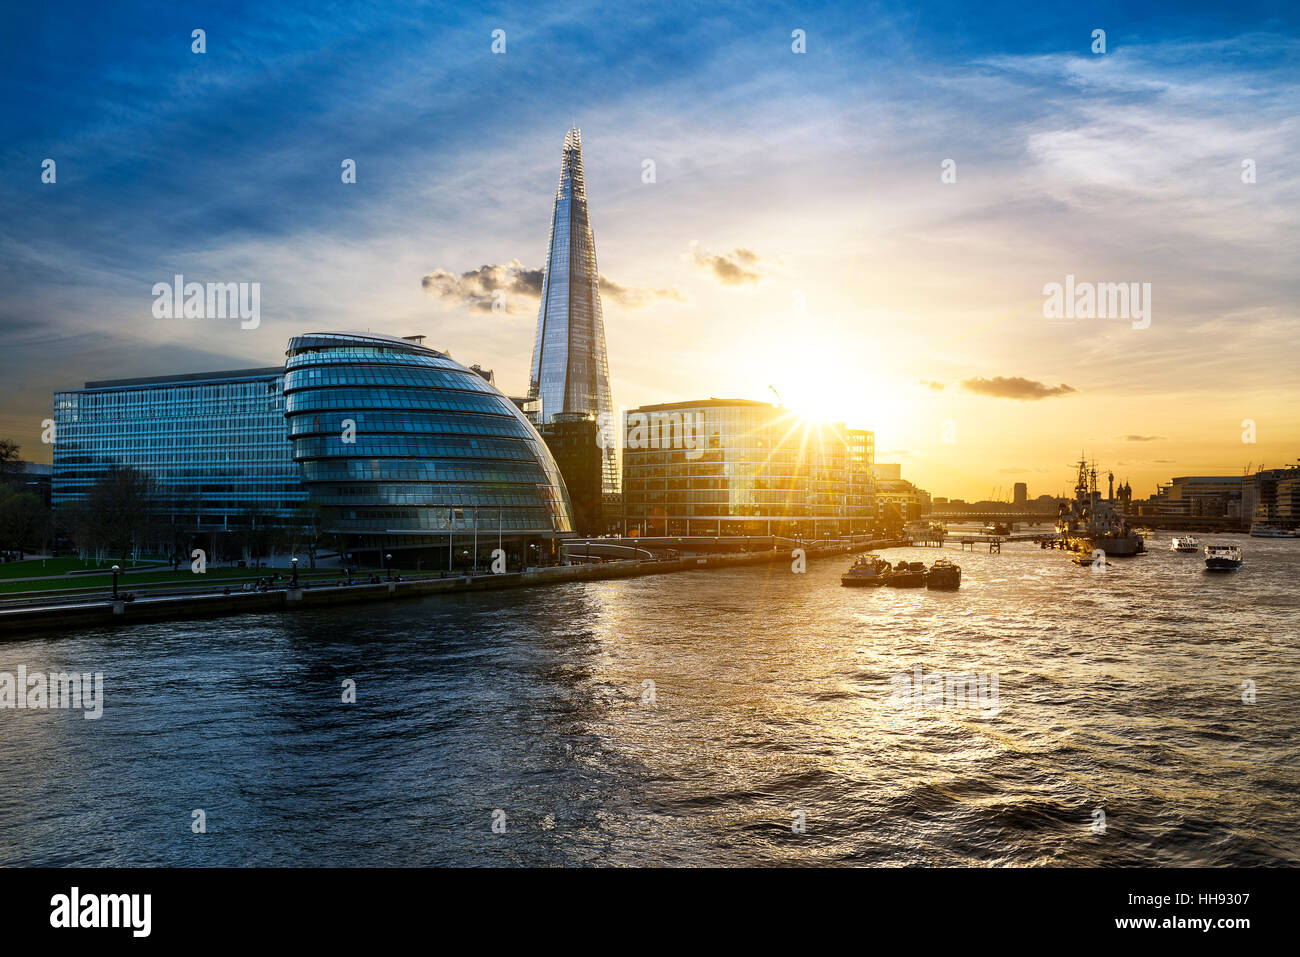 New London city hall at sunset, panoramic view from Thames river - Stock Image